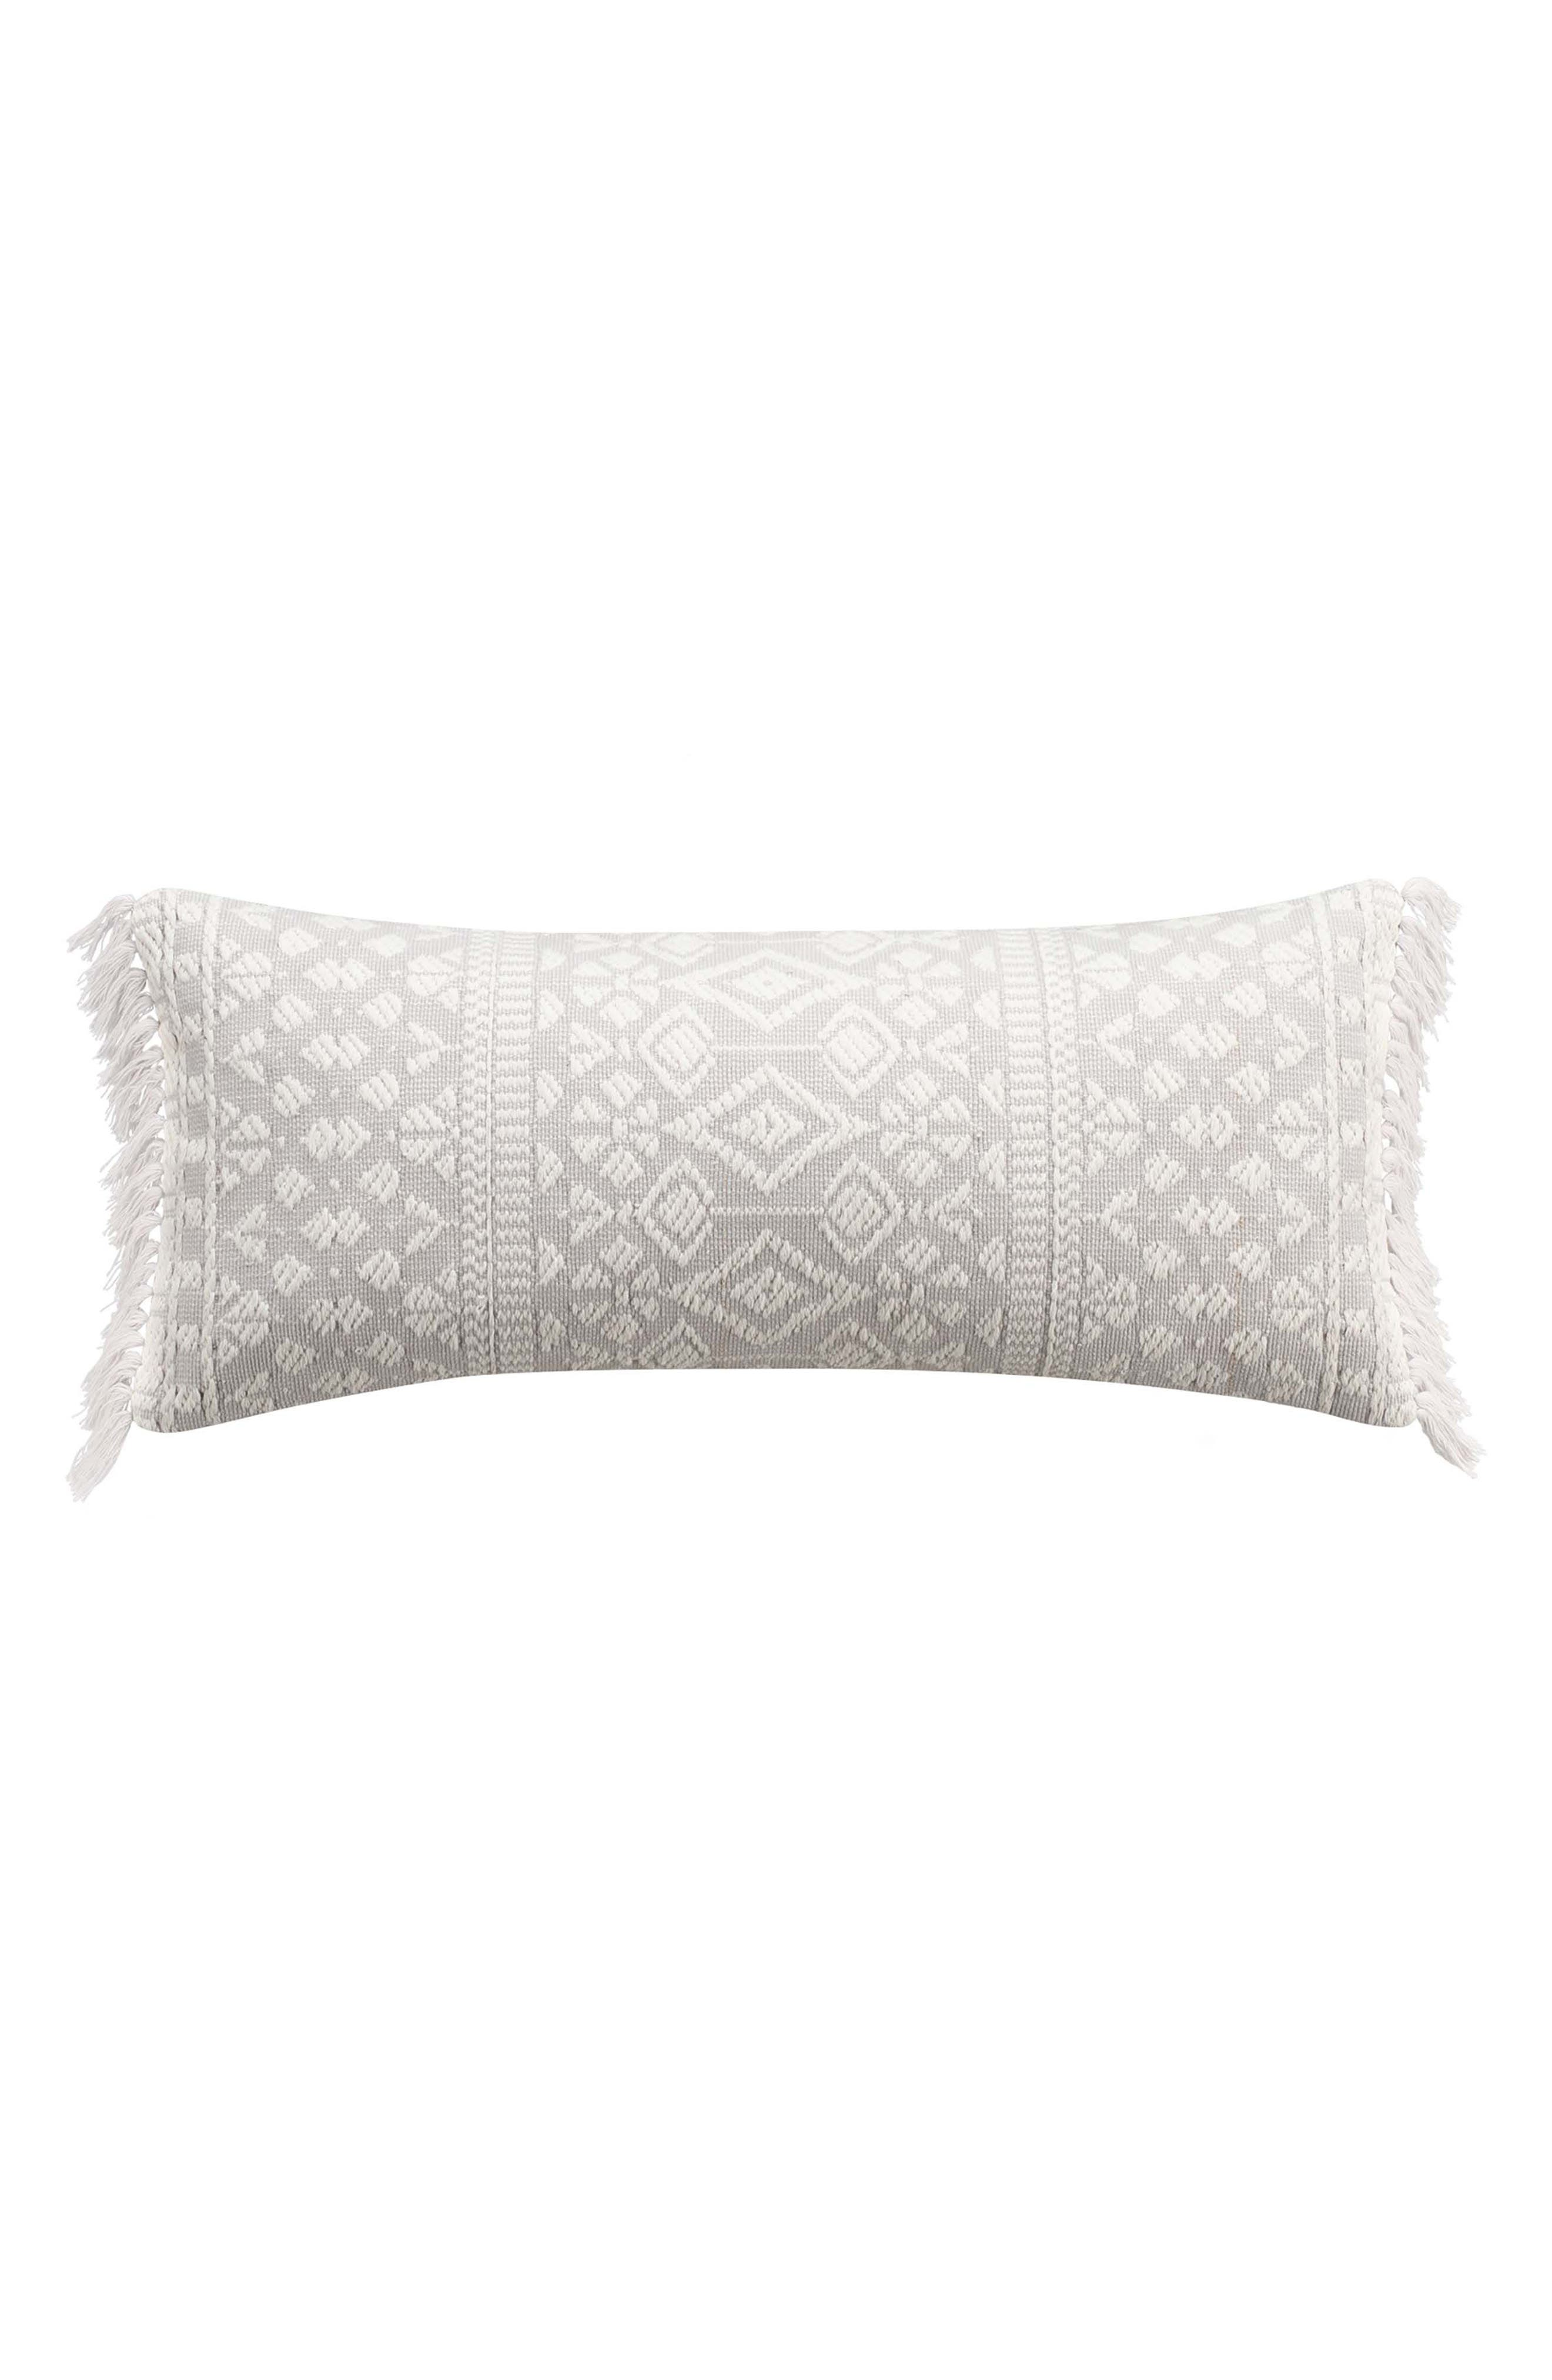 Geometric Embroidered Accent Pillow,                             Main thumbnail 1, color,